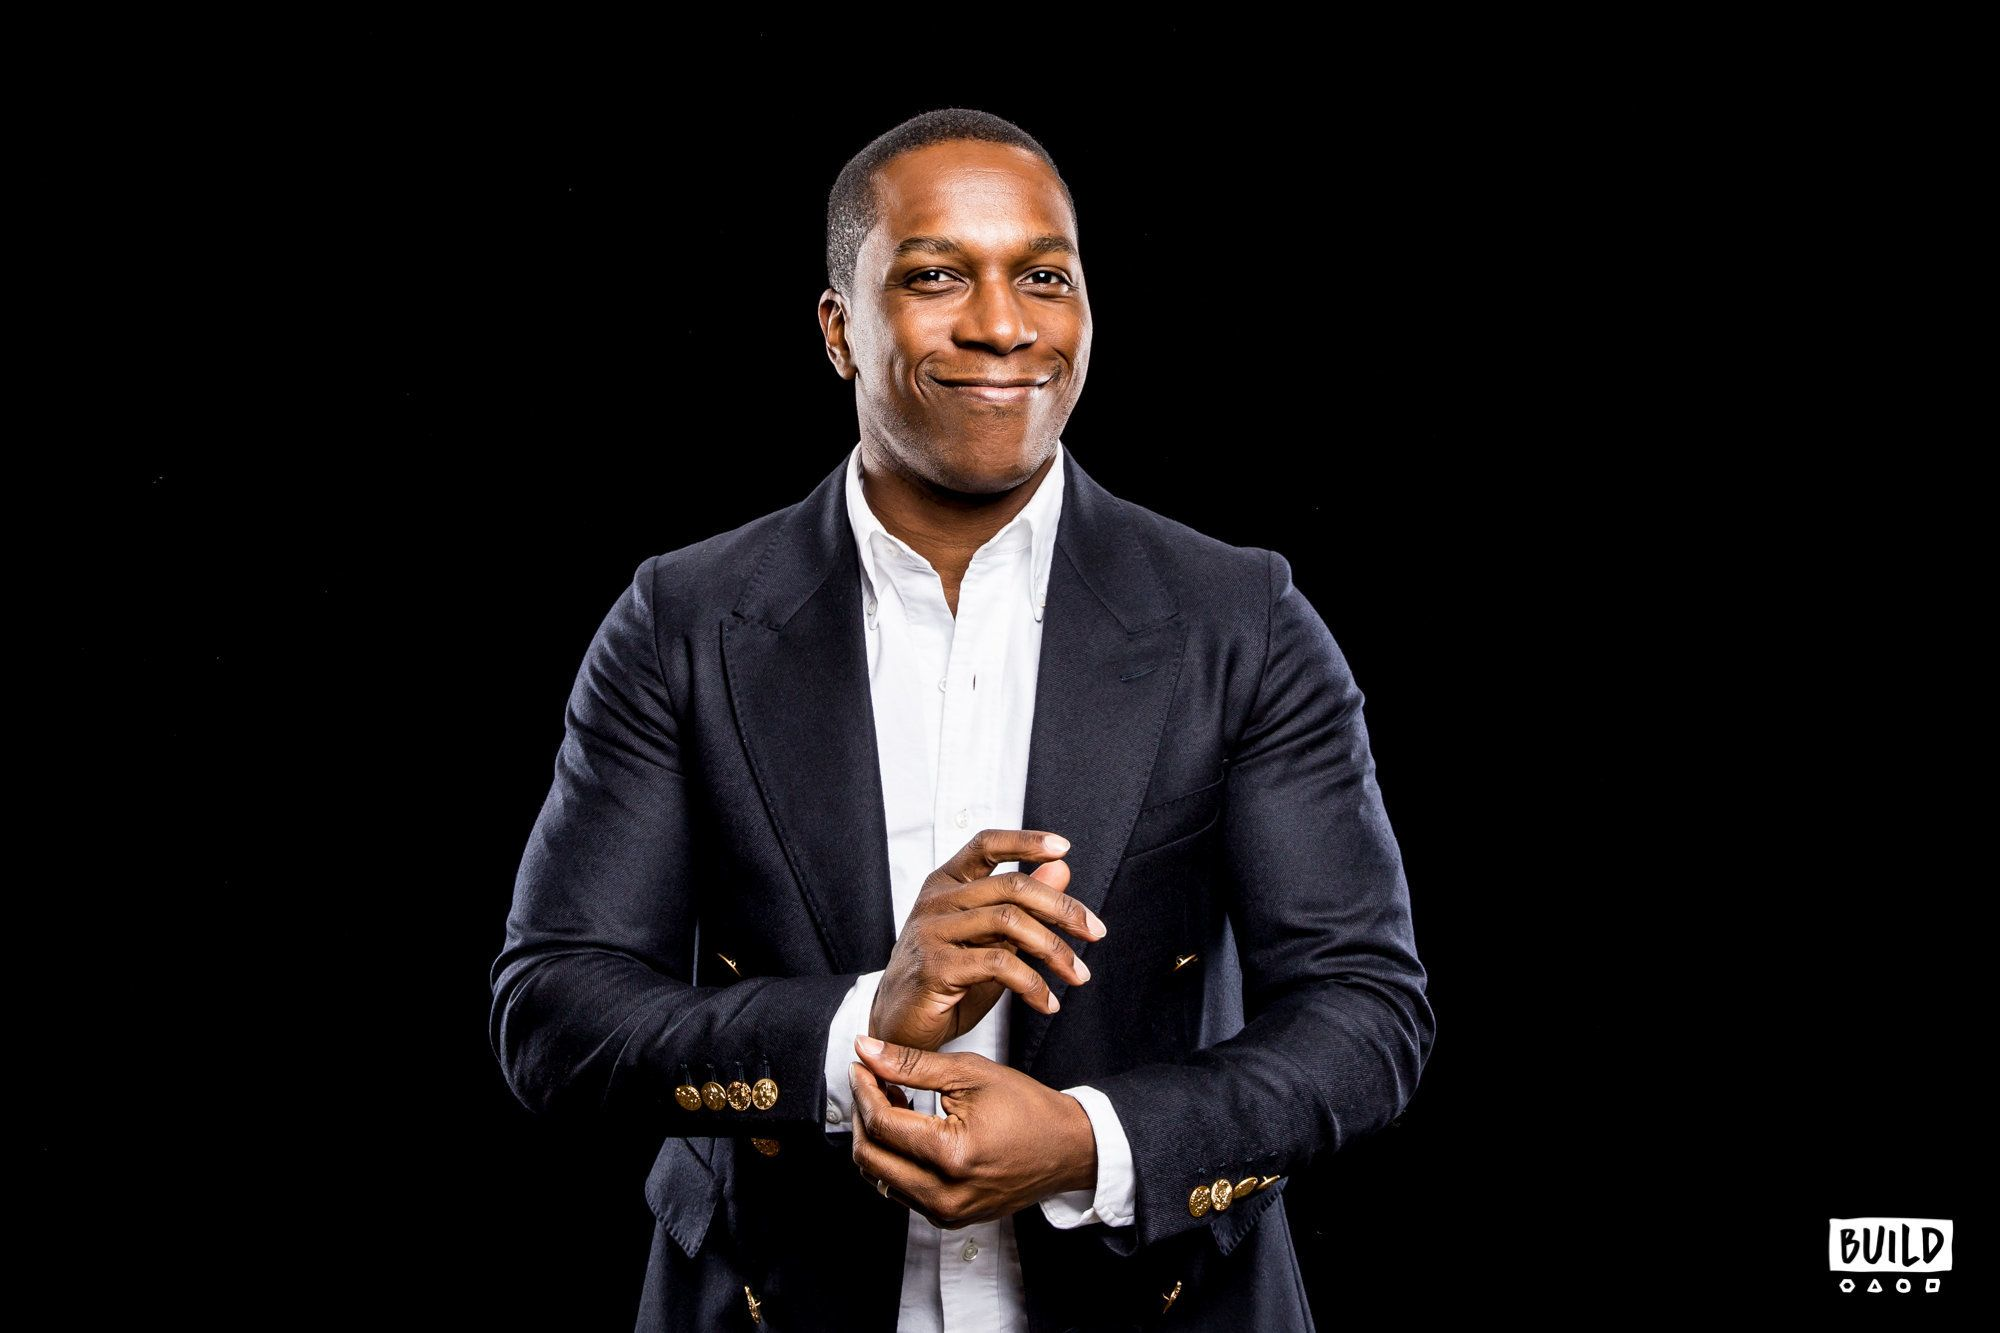 Leslie Odom Jr. visits Build Series NYC on November 30, 2017. Photo by Joe Russo.